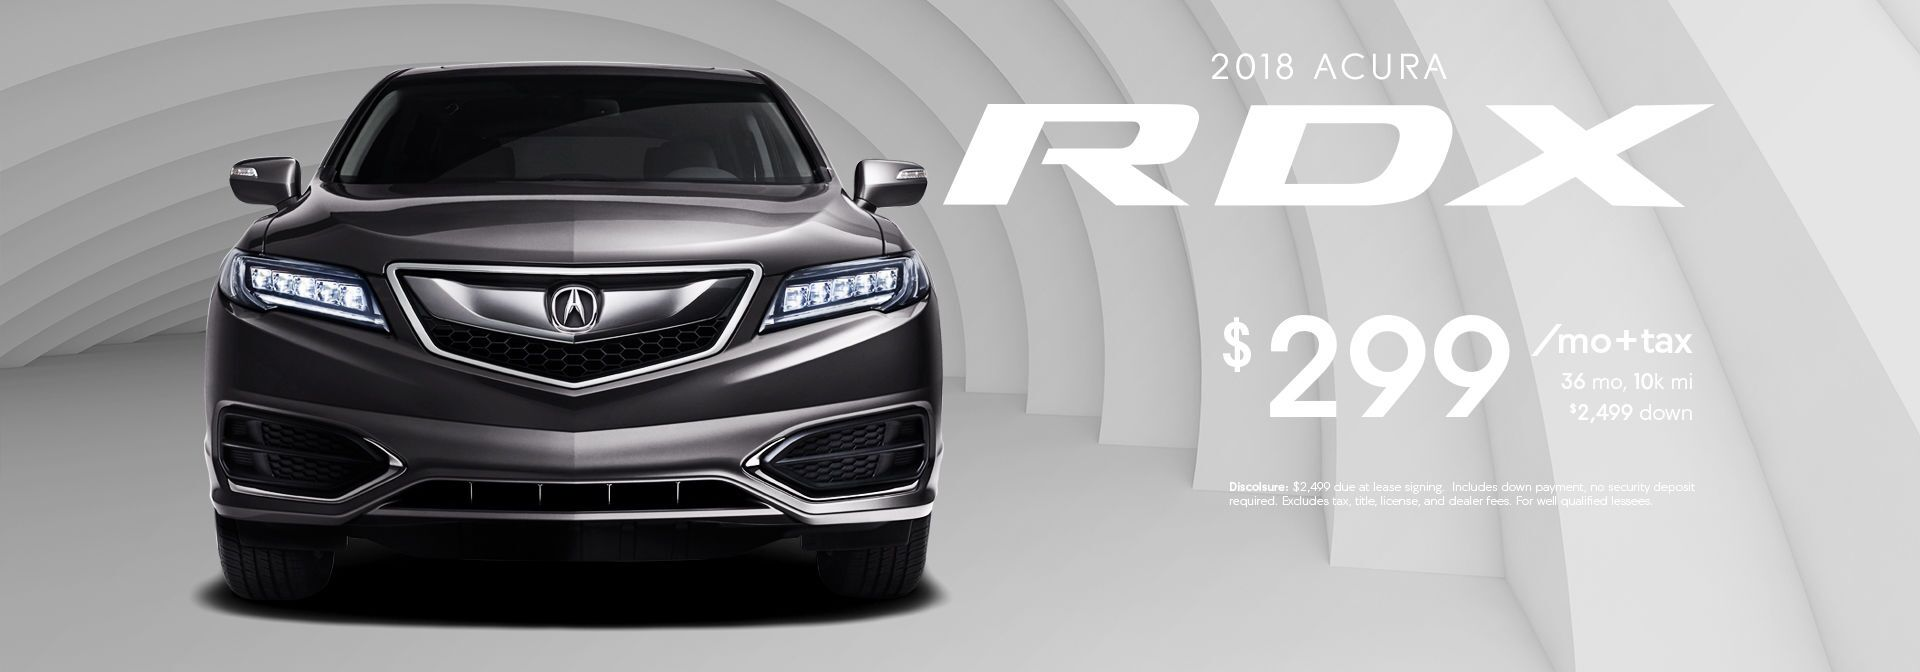 RDX LEASE SPECIAL